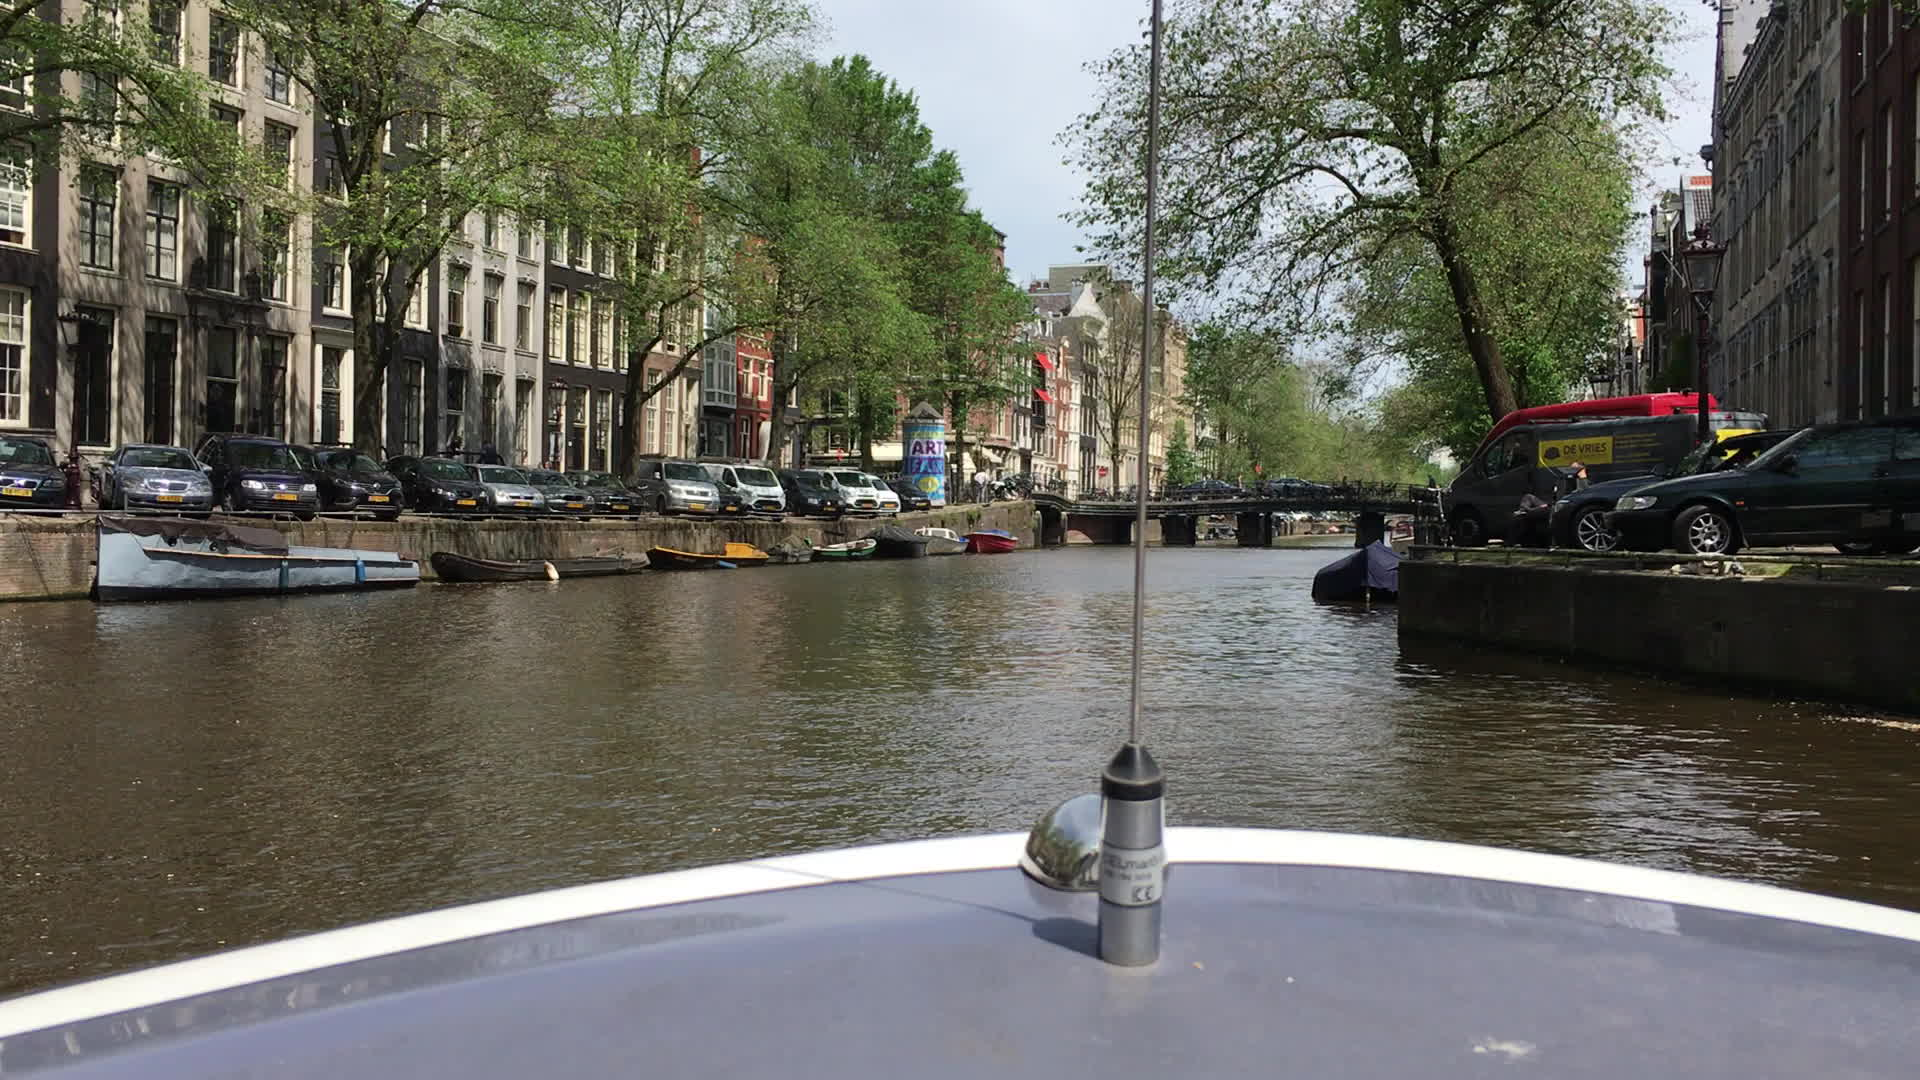 Amsterdam, Amsterdam canals on a boat GIFs